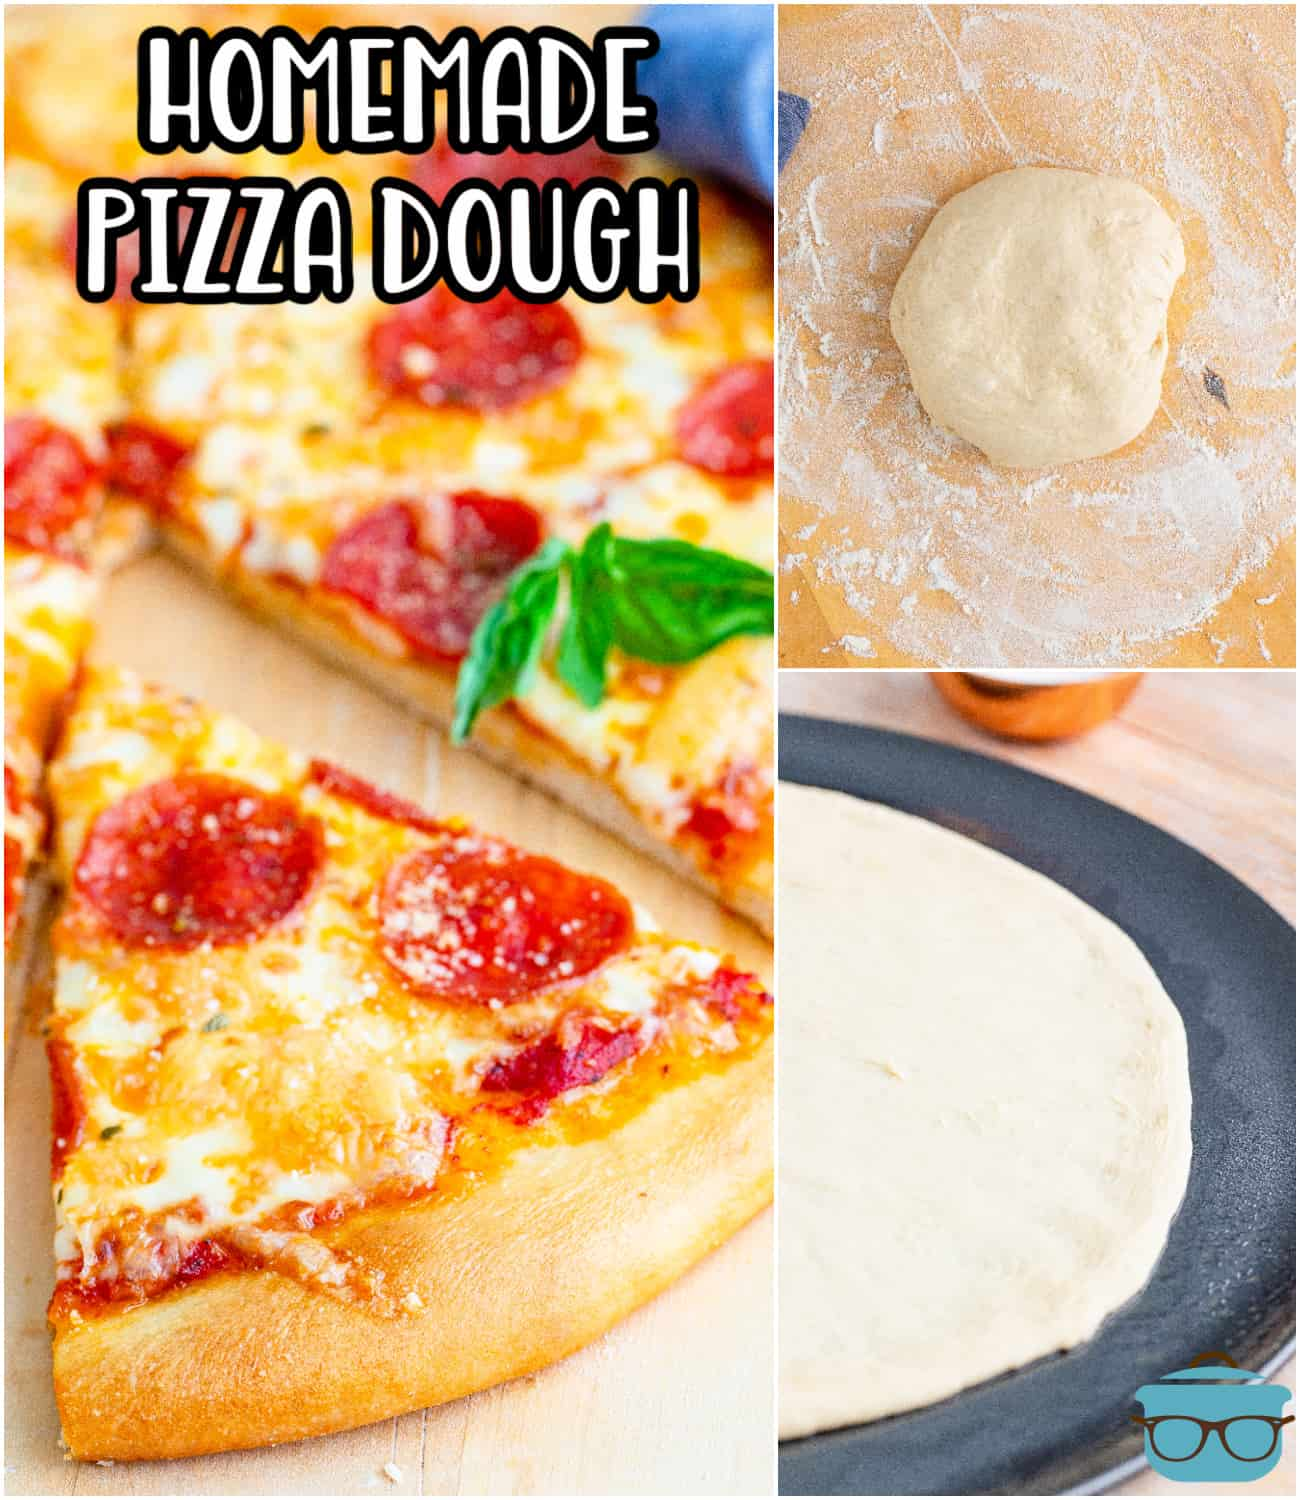 This from-scratch homemade pizza dough is the best part of the pizza. A tender, chewy pizza crust that holds up well to any topping!